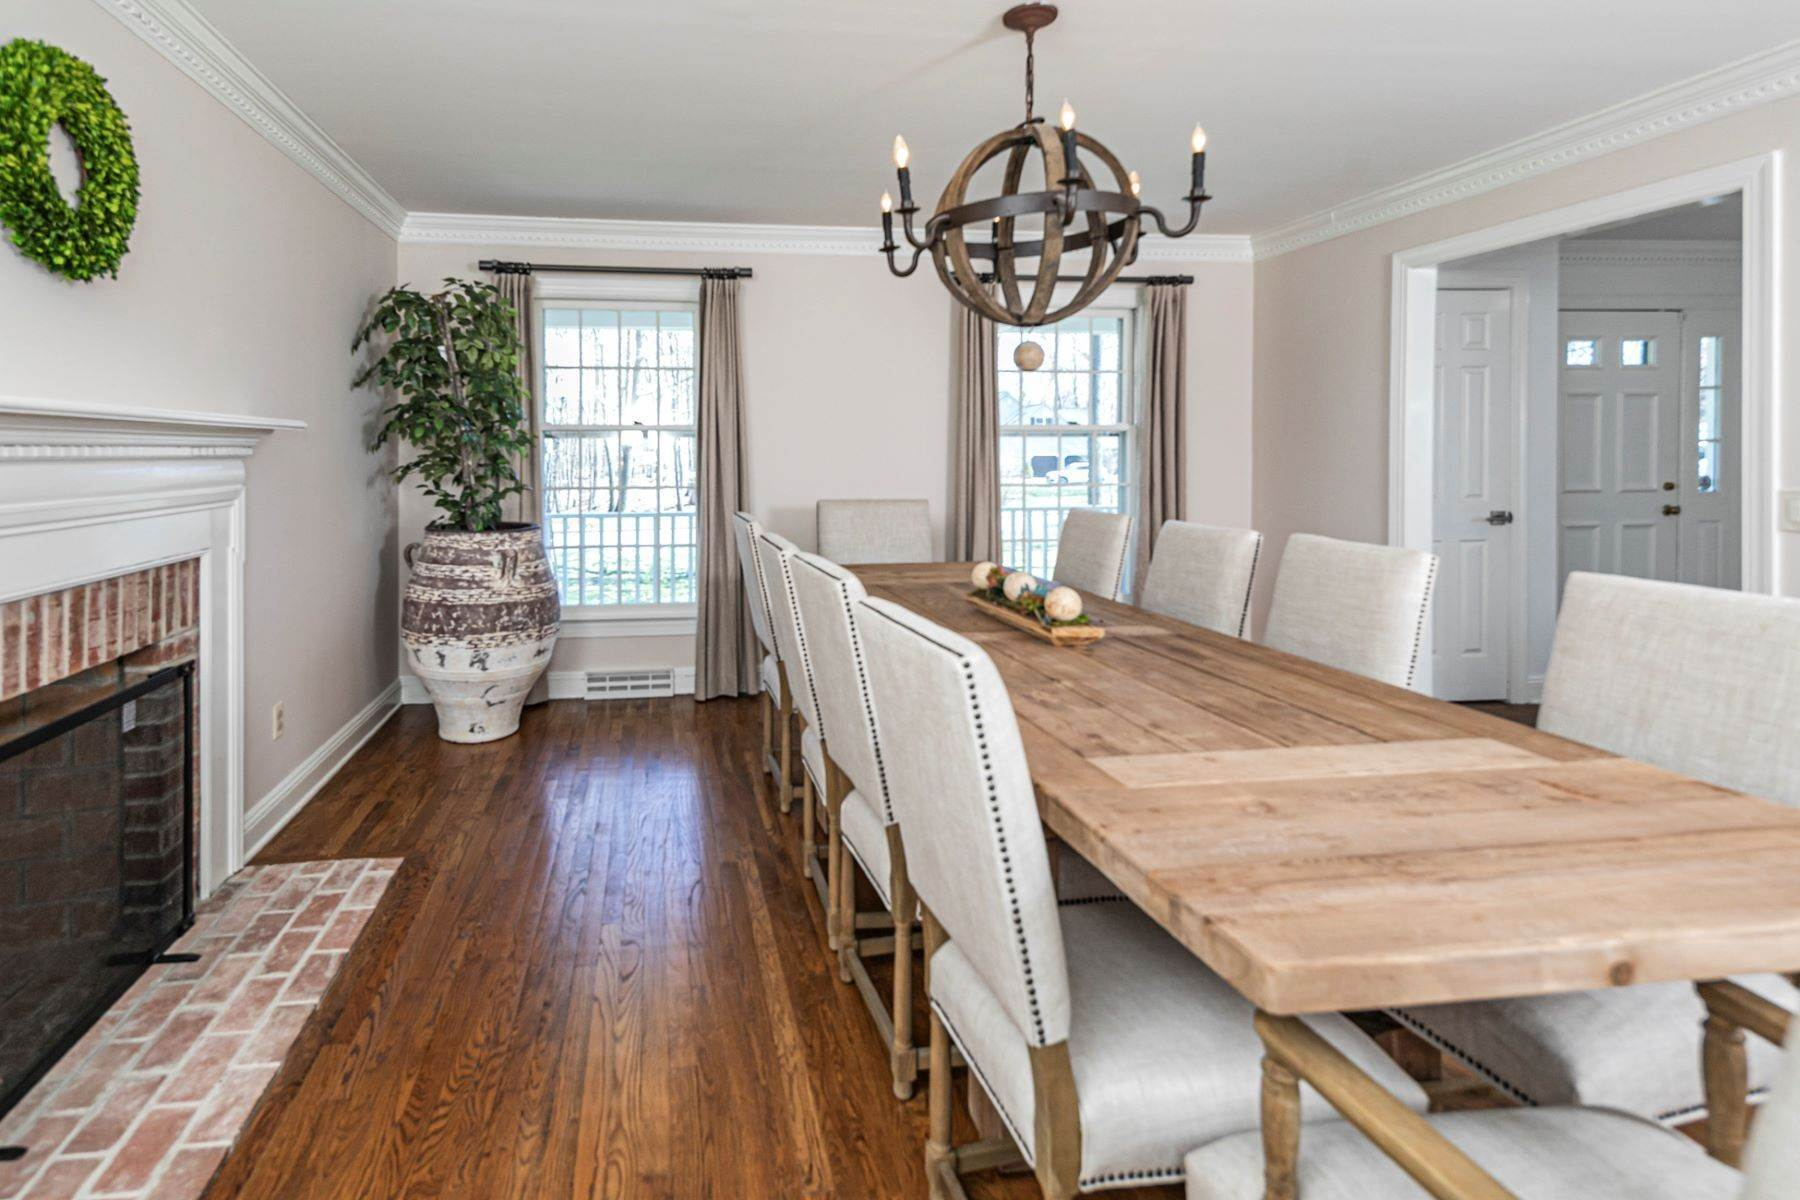 25. Single Family Homes for Sale at A New Kitchen And Updated Baths Make This Home Sparkle 91 West Shore Drive, Pennington, New Jersey 08534 United States